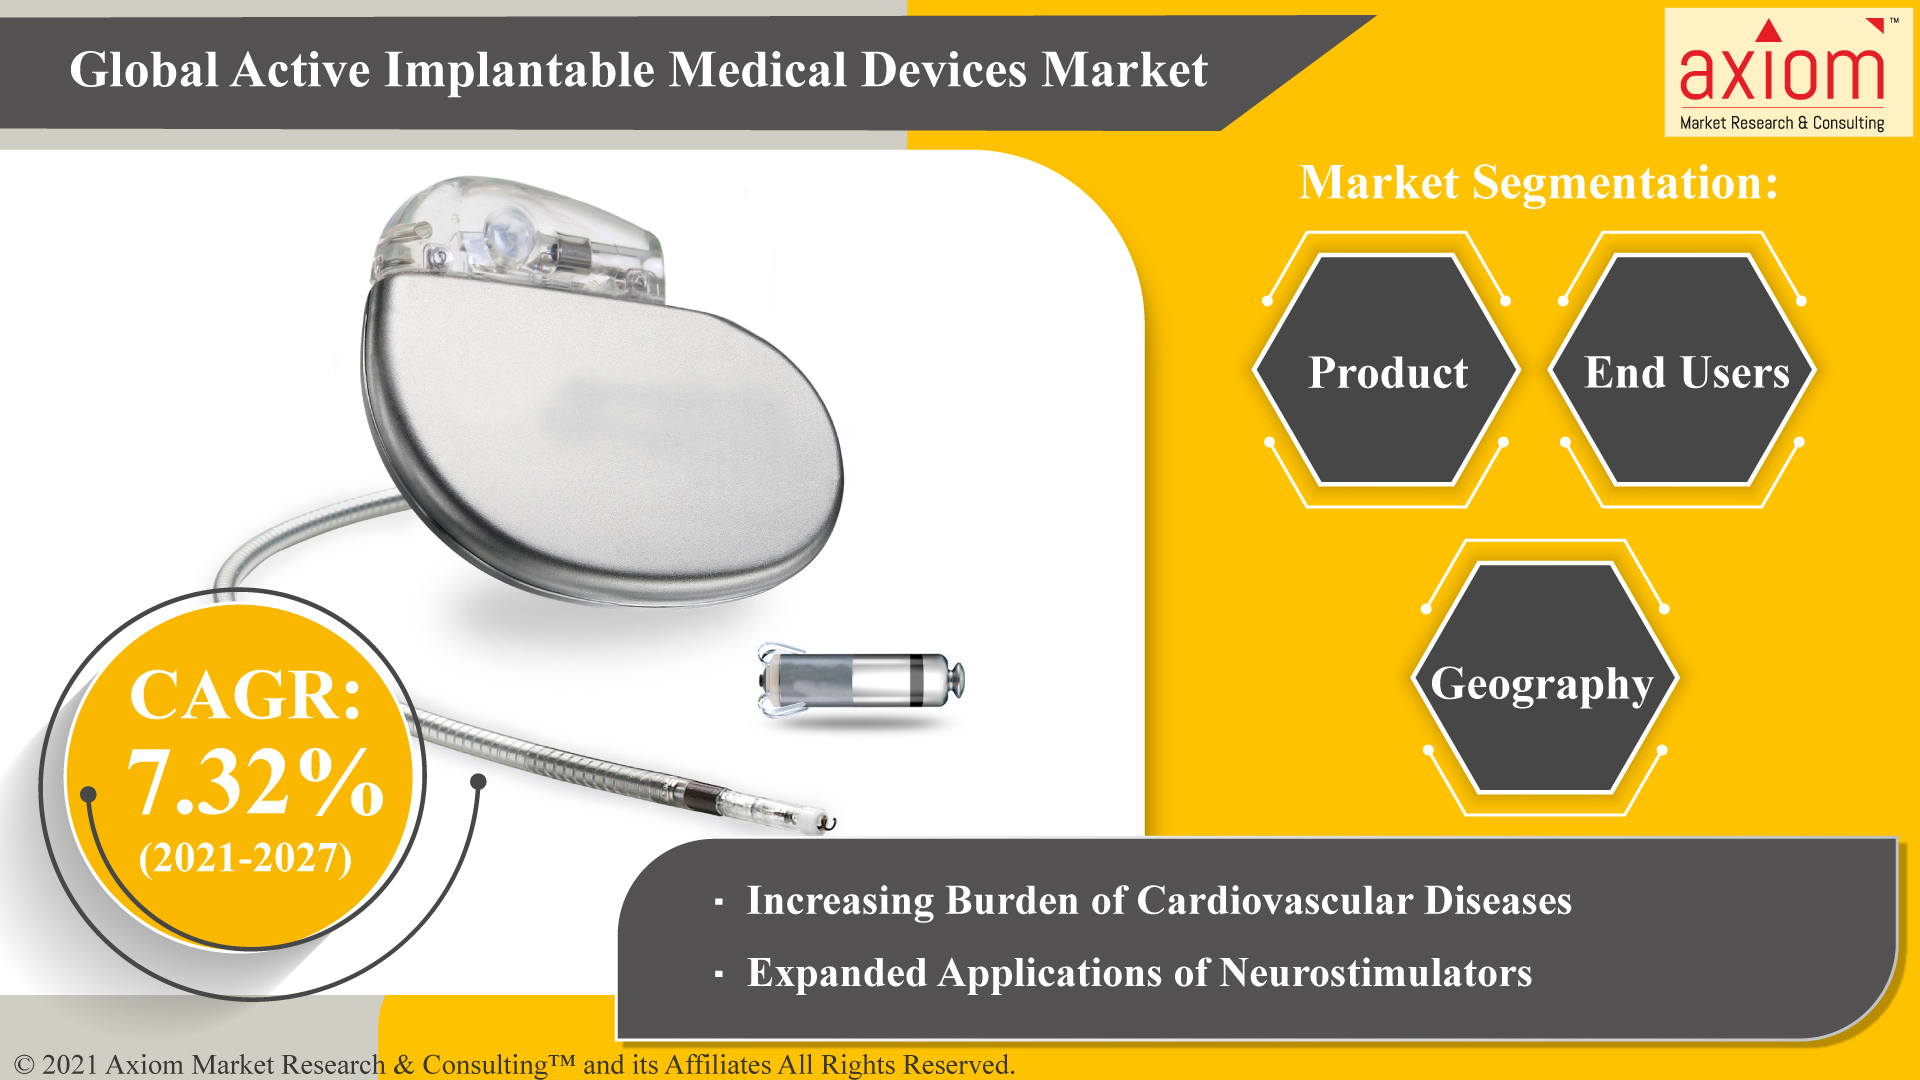 Global-Active-Implantable-Medical-Devices-Market_paid-pr